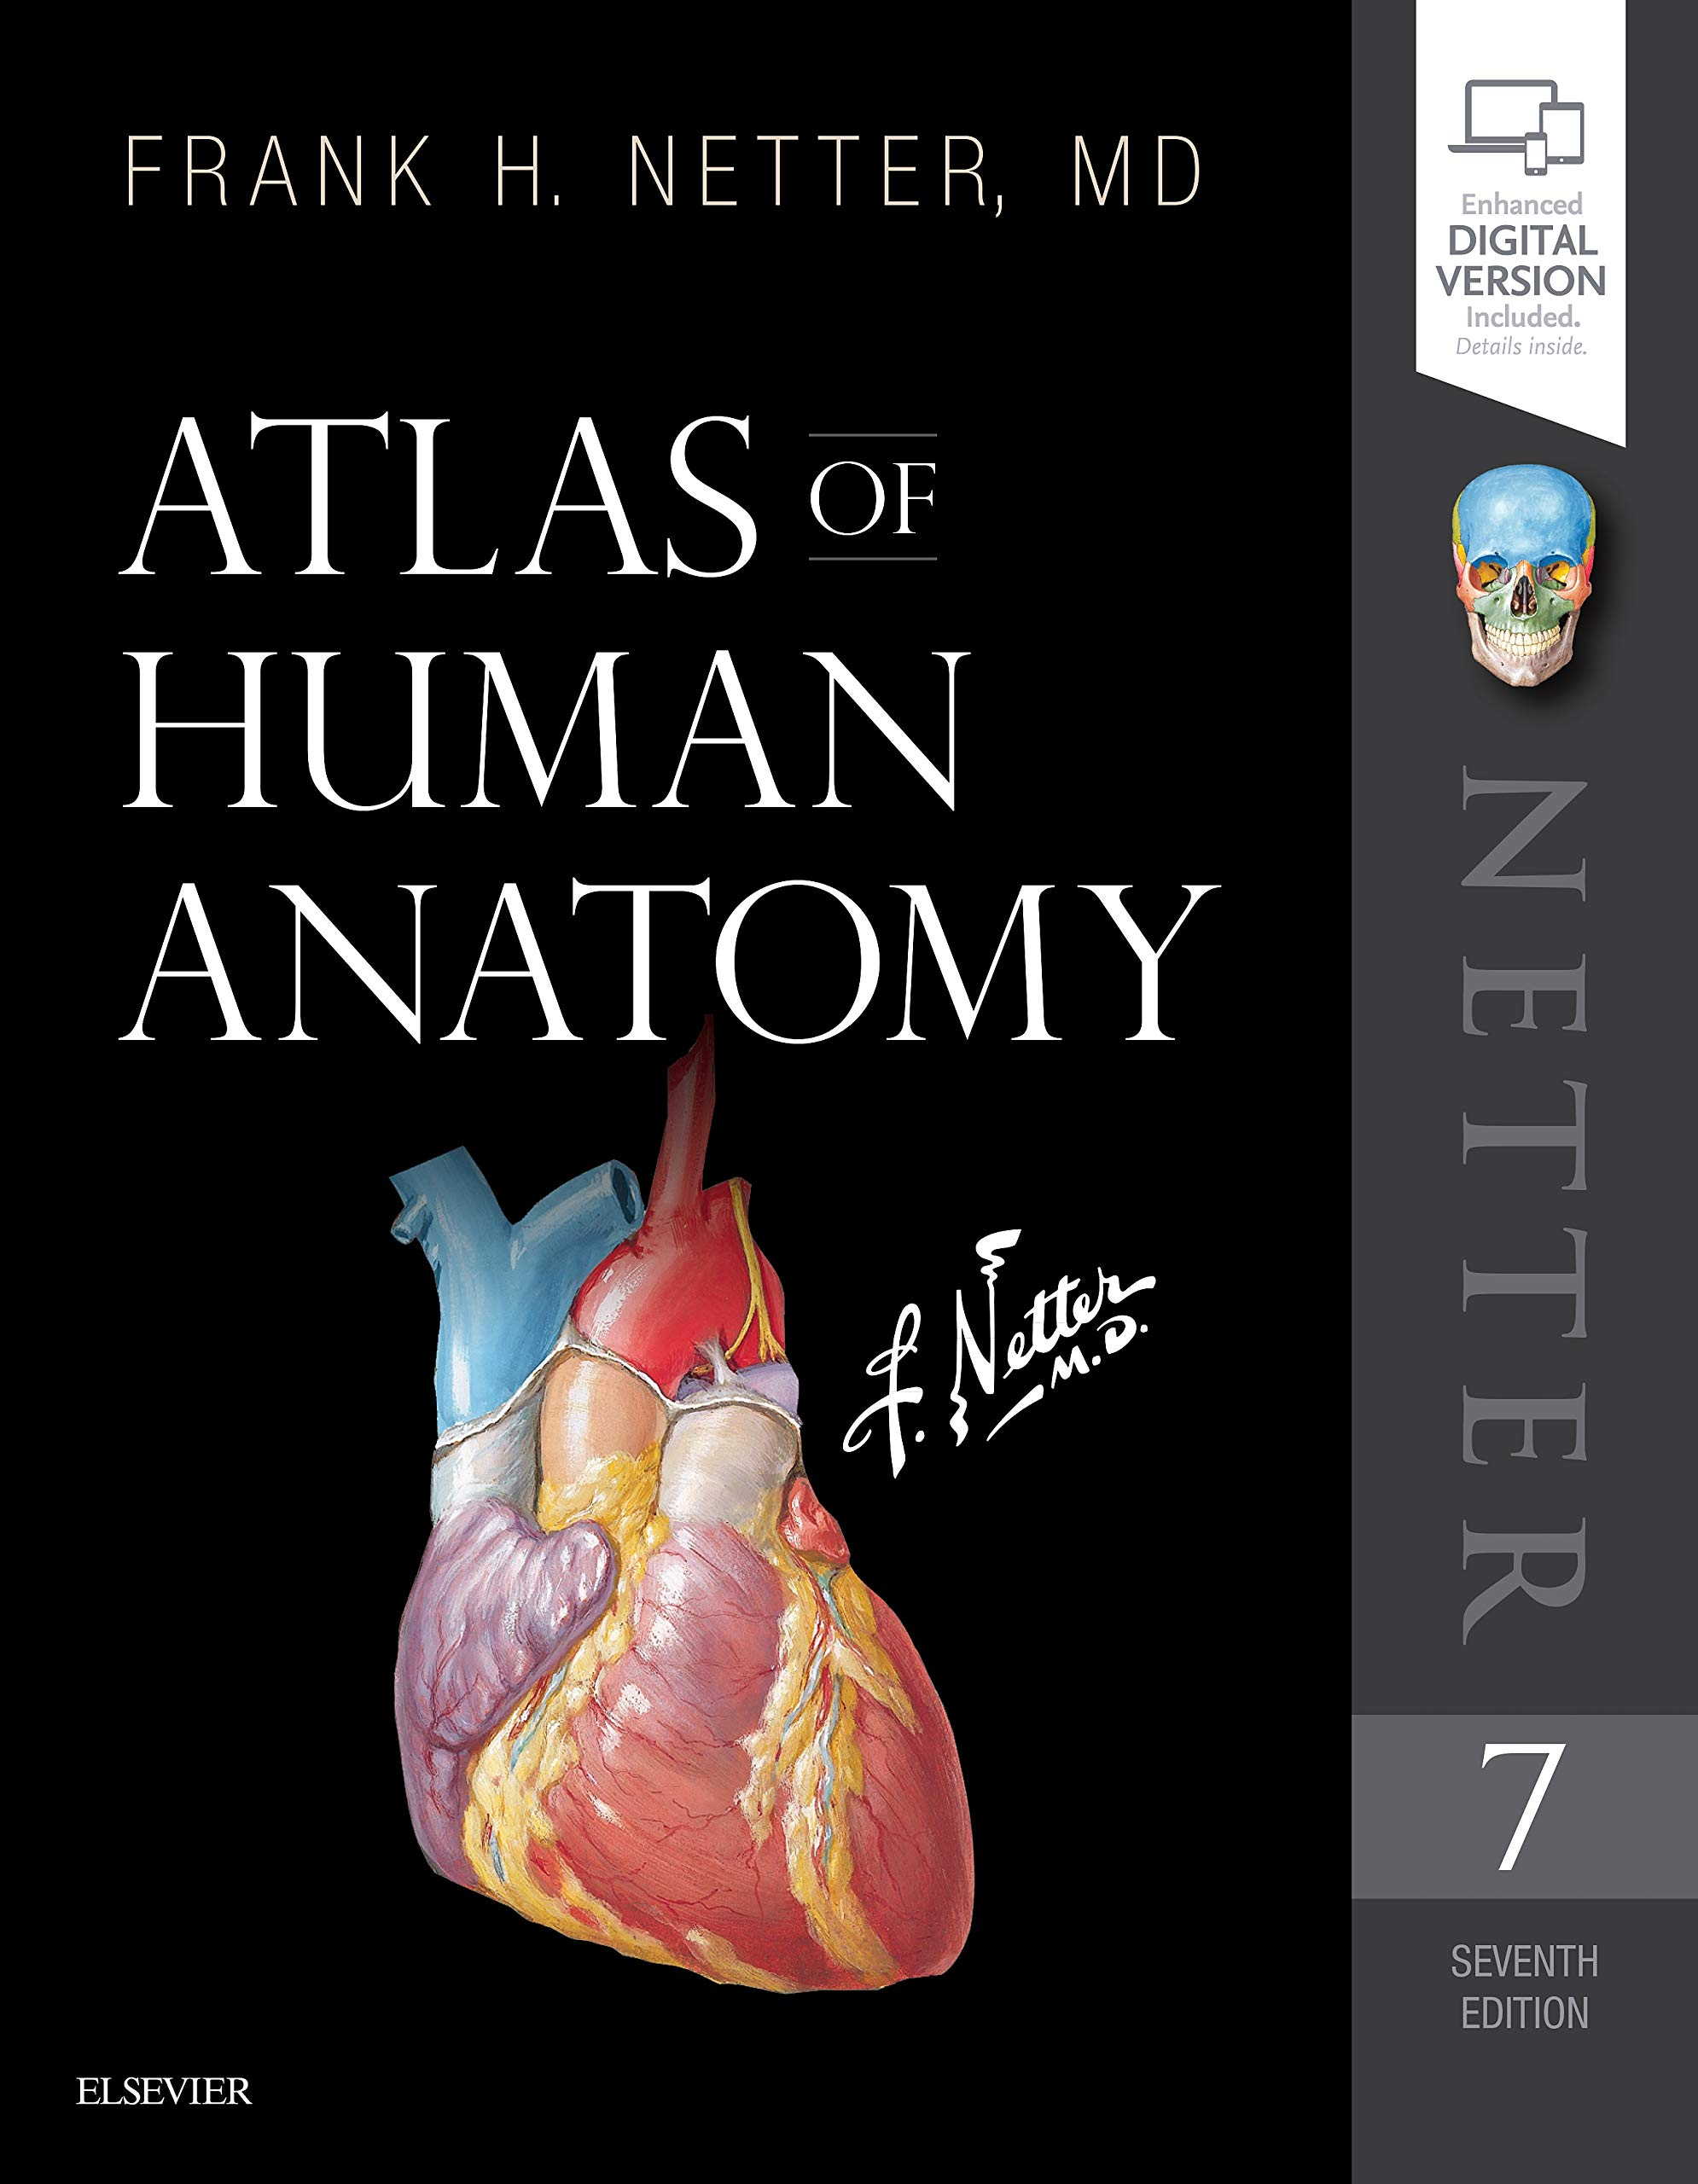 Atlas of human Anatomy post thumbnail image